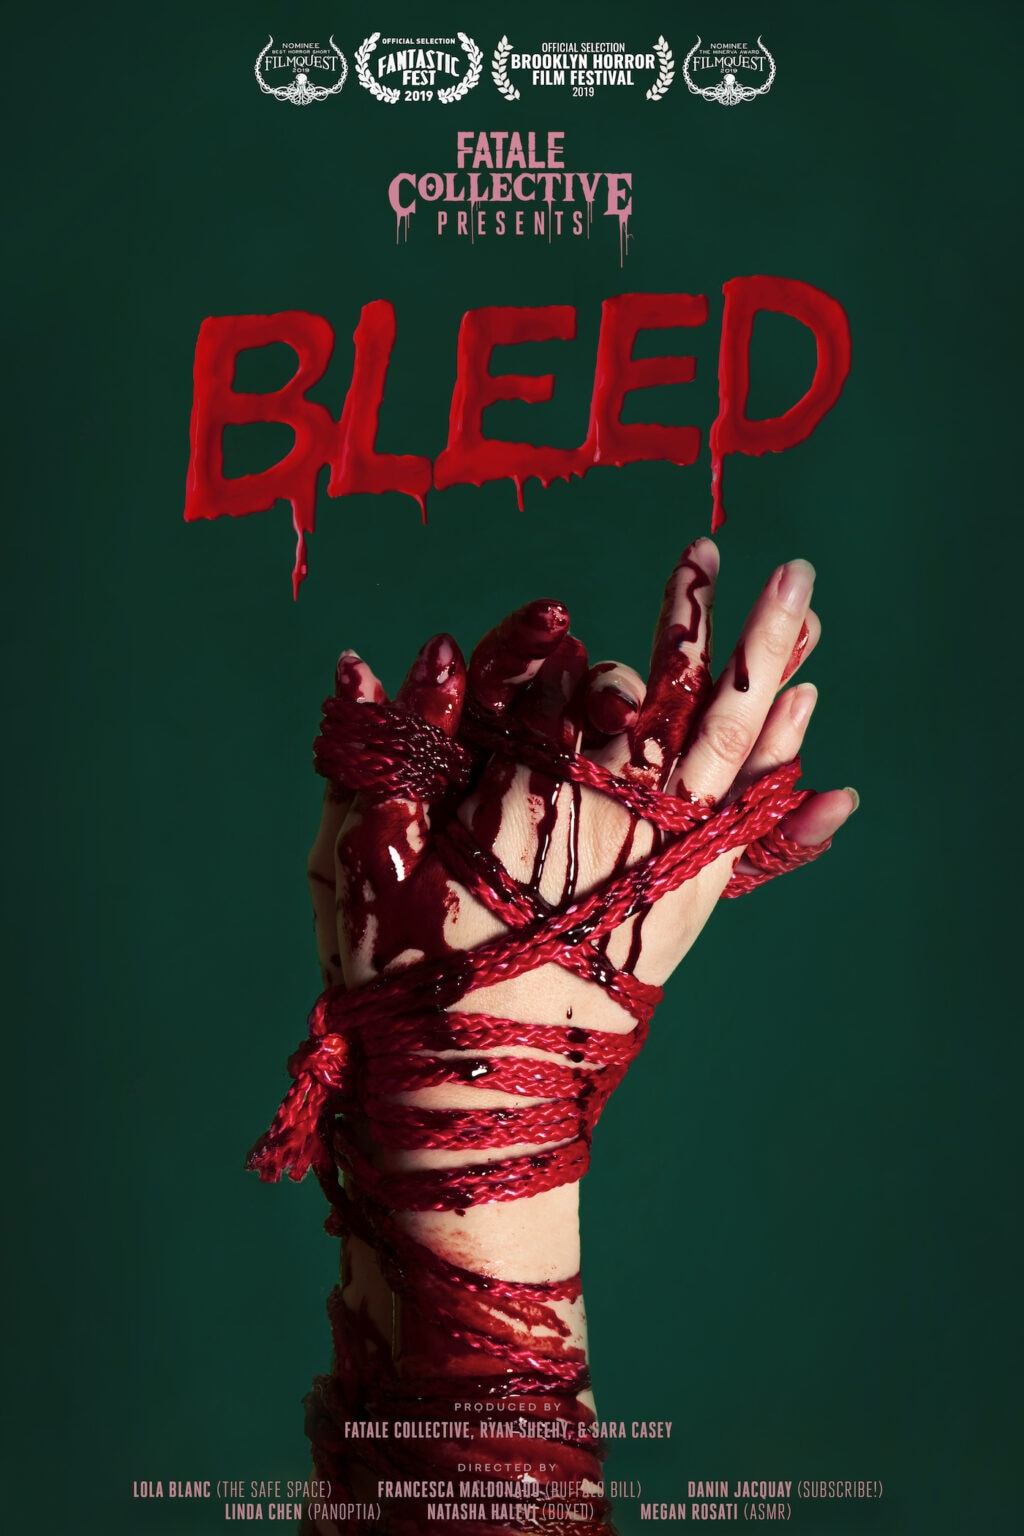 bleed Safe Space 1024x1536 - Fantastic Fest 2019 Exclusive: Character Posters For Shorts Anthology BLEED